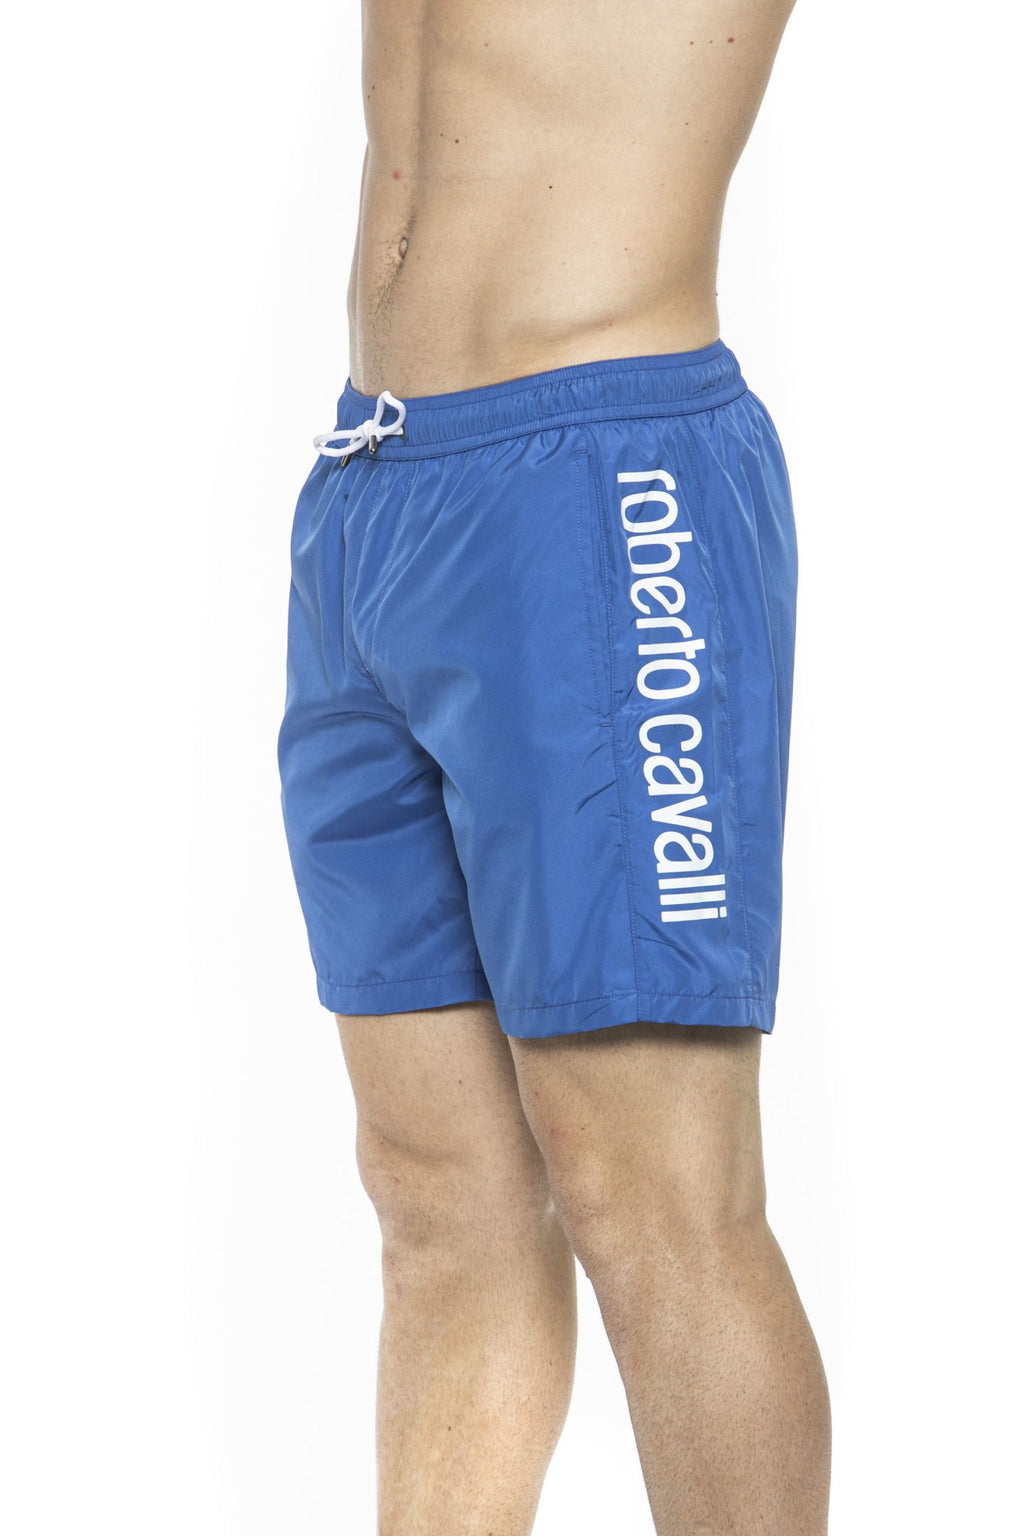 Blue Beachwear Boxer With Pockets. Side Logo Print. Internal Net. Back Pocket